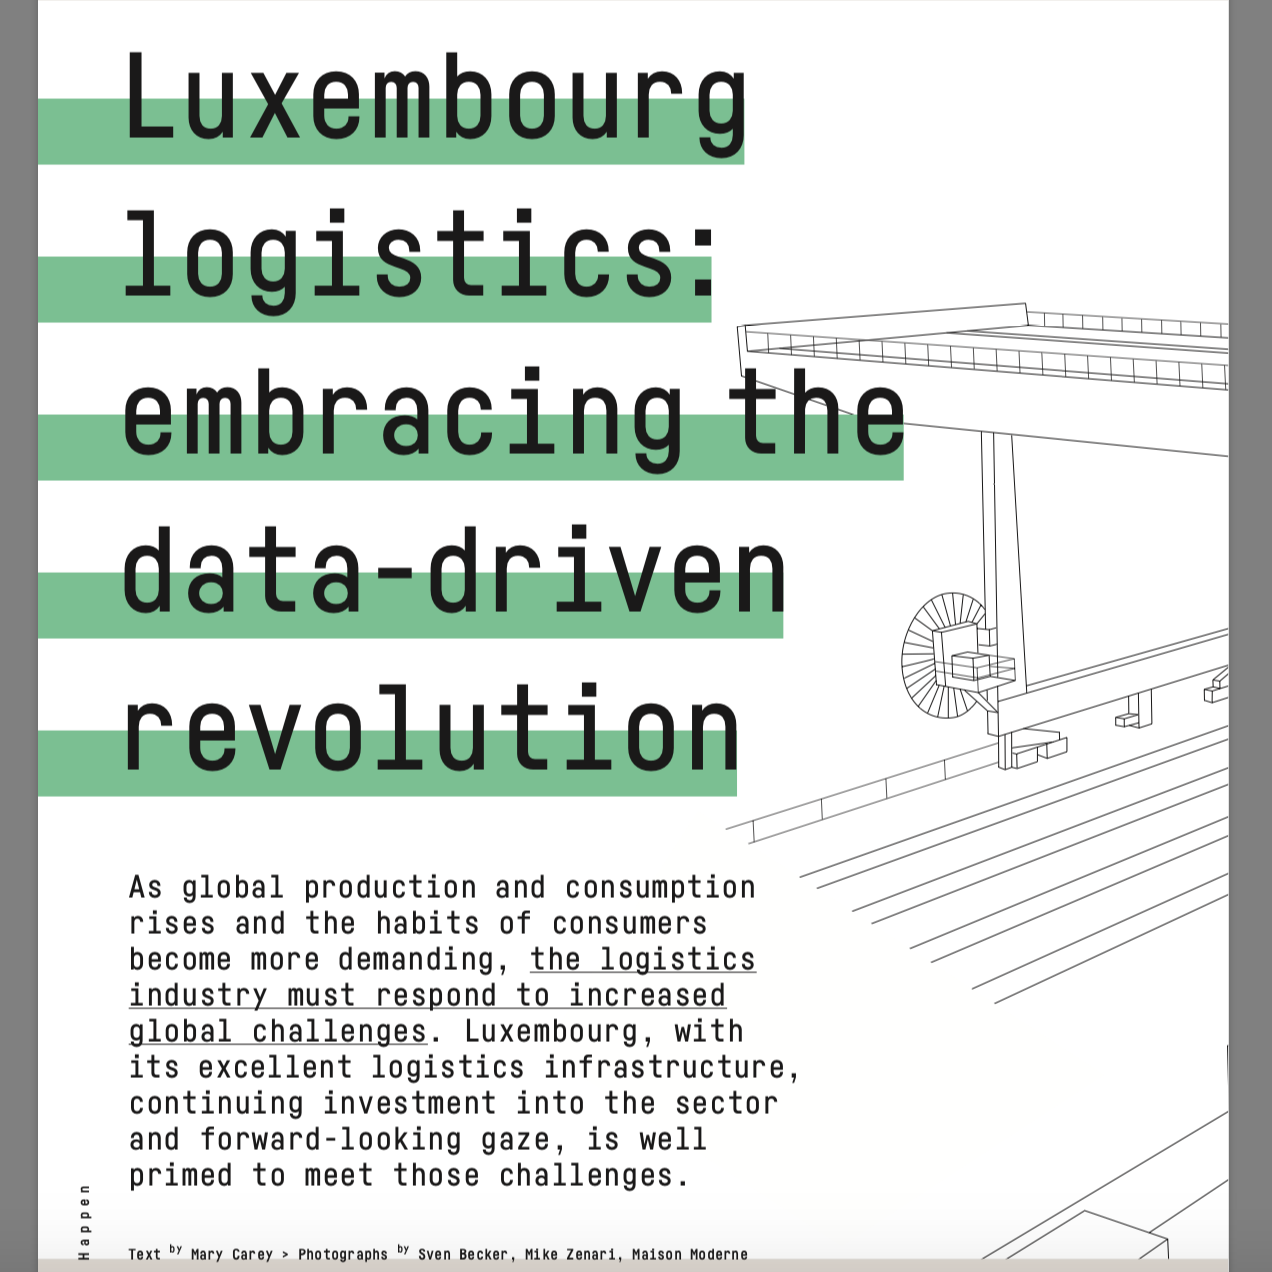 Luxembourg logistics: embracing the data-driven revolution